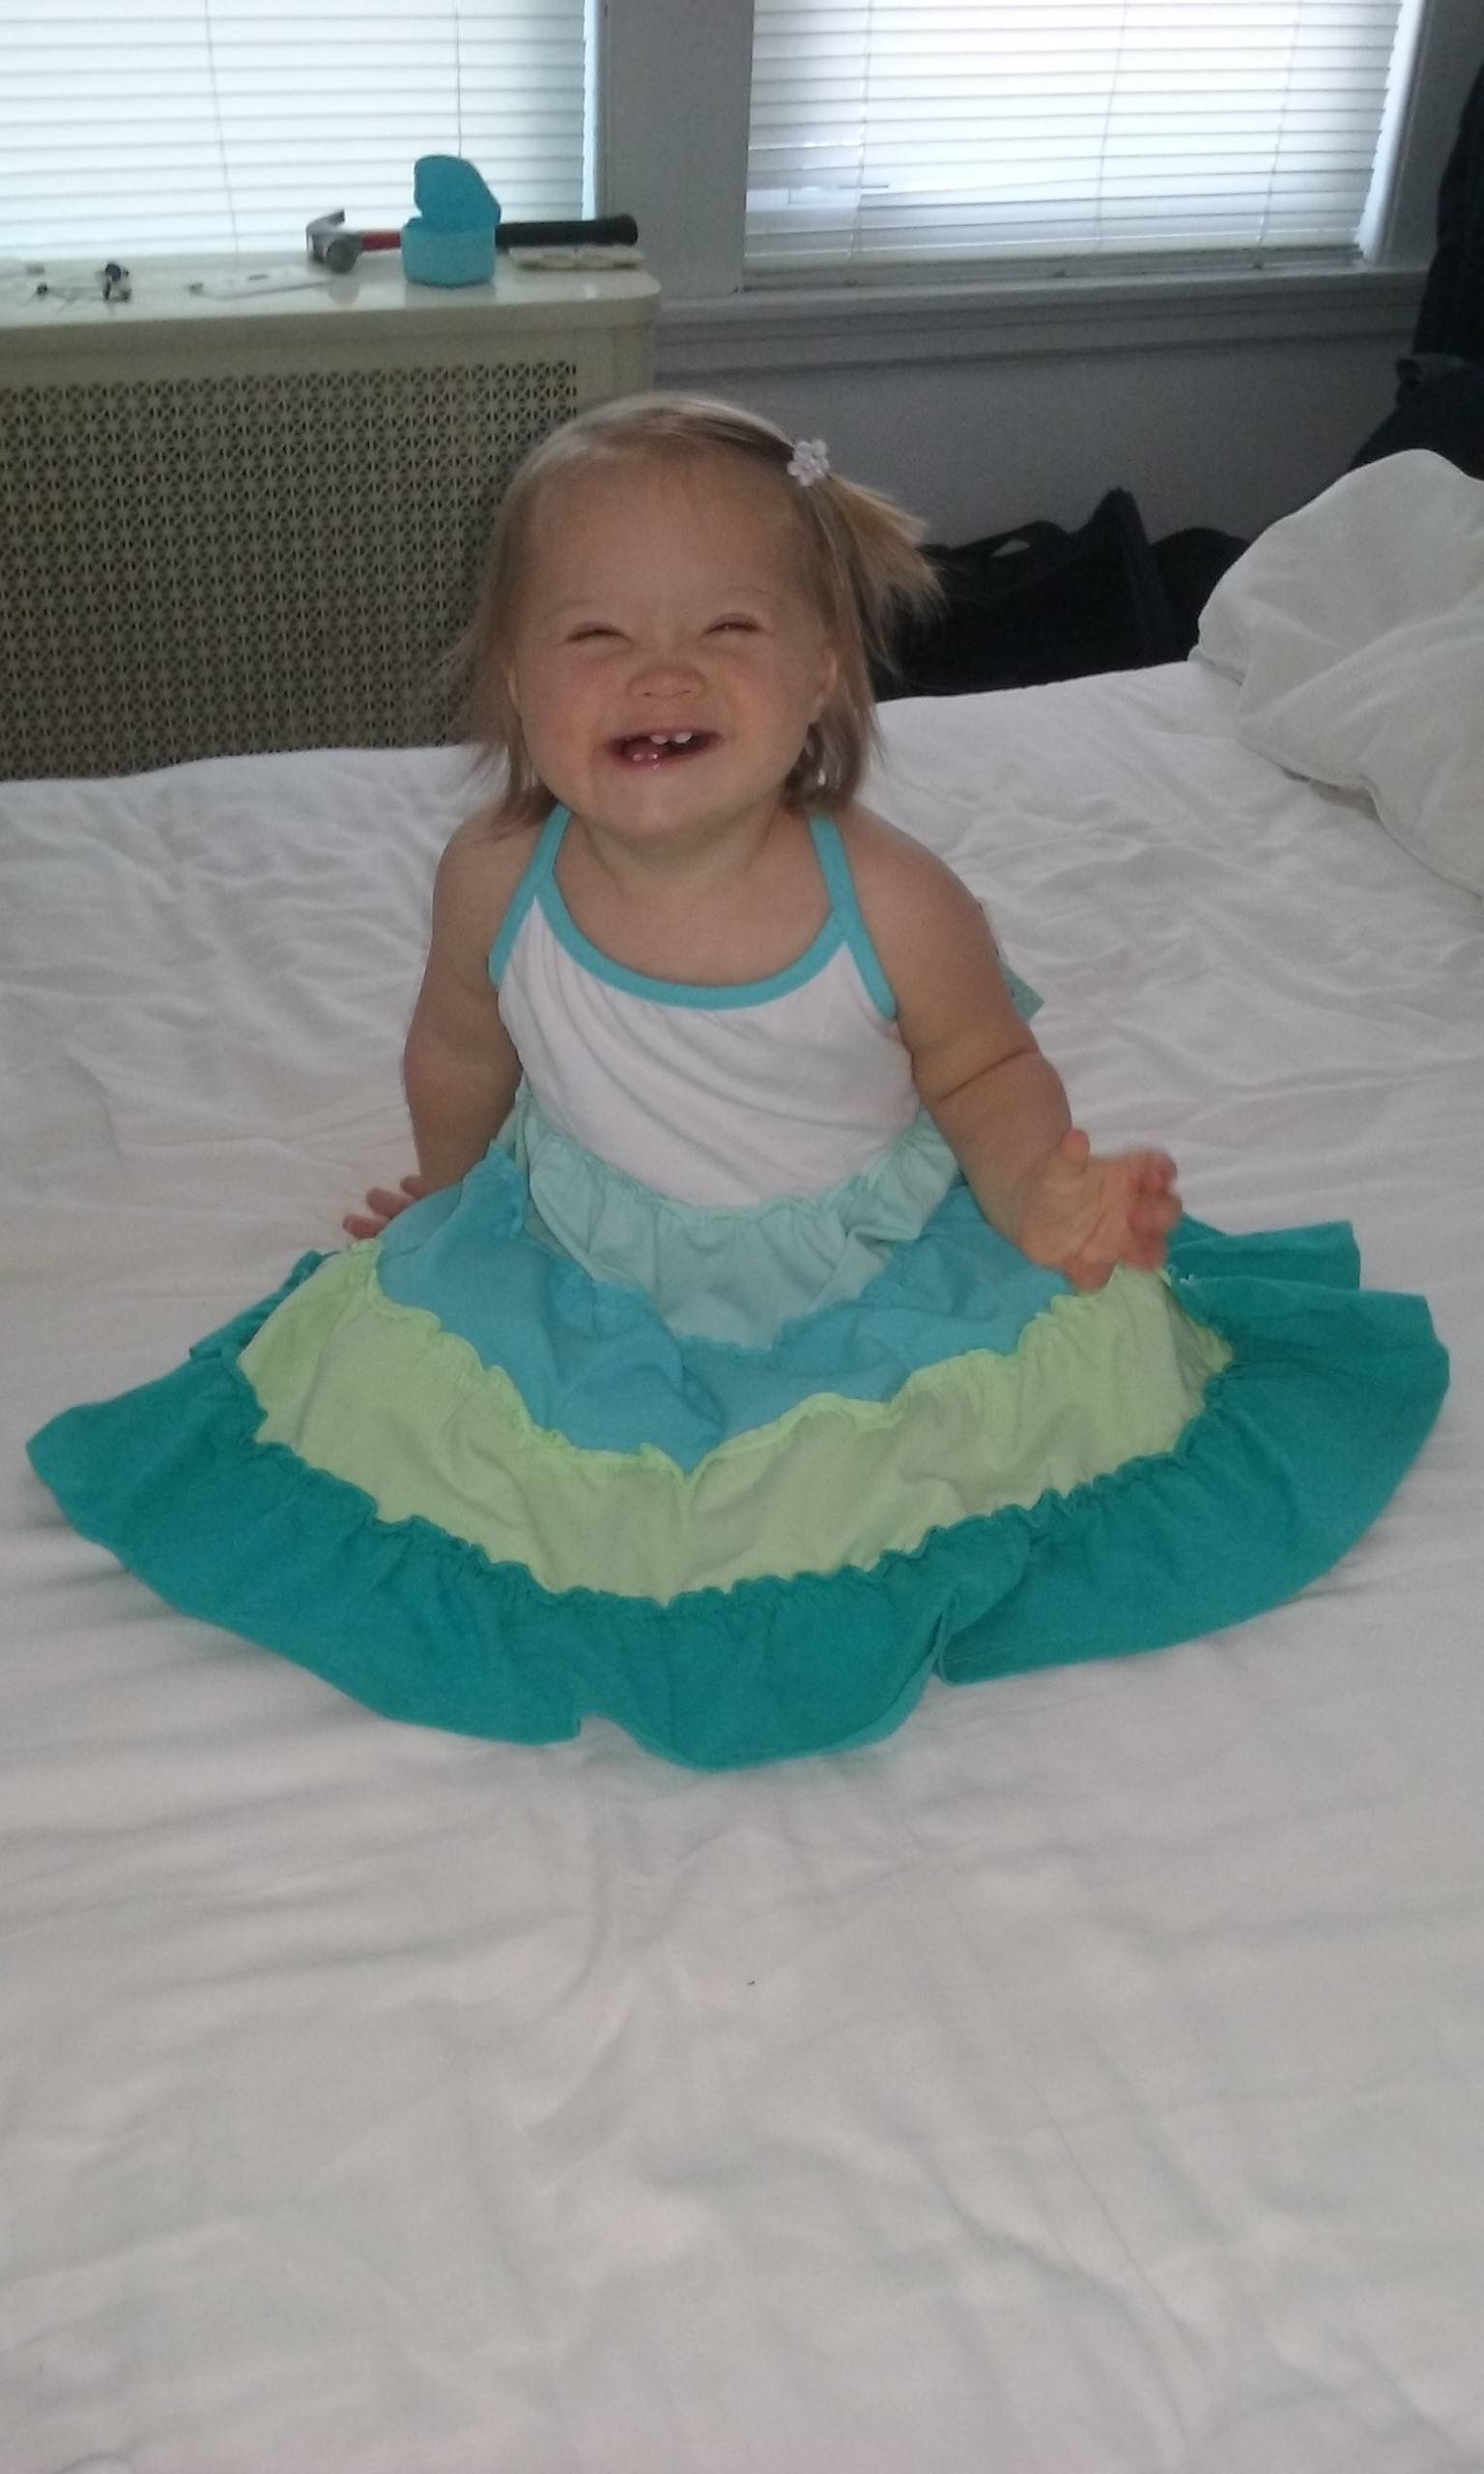 baby with down syndrome sitting on a bed smiling